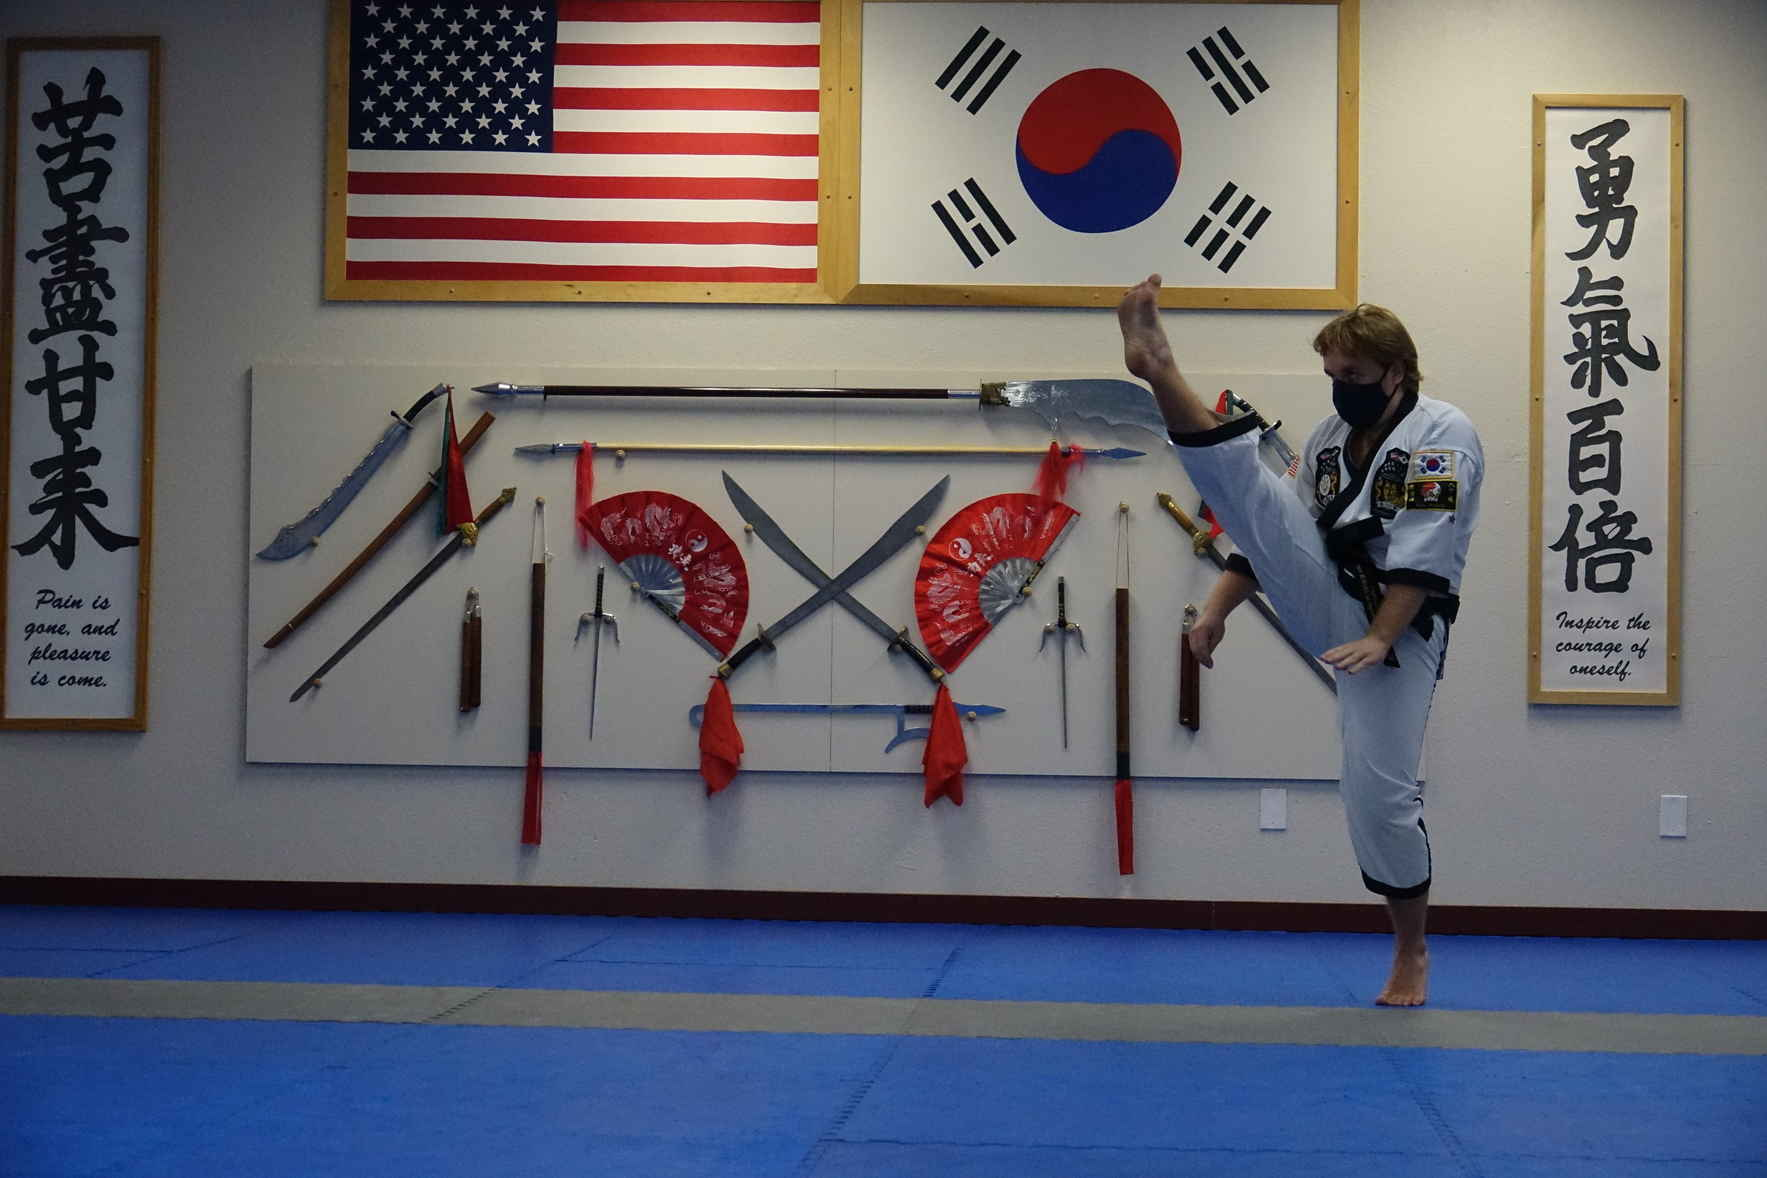 Donate now to support Health and Wellness through Traditional Martial Arts image